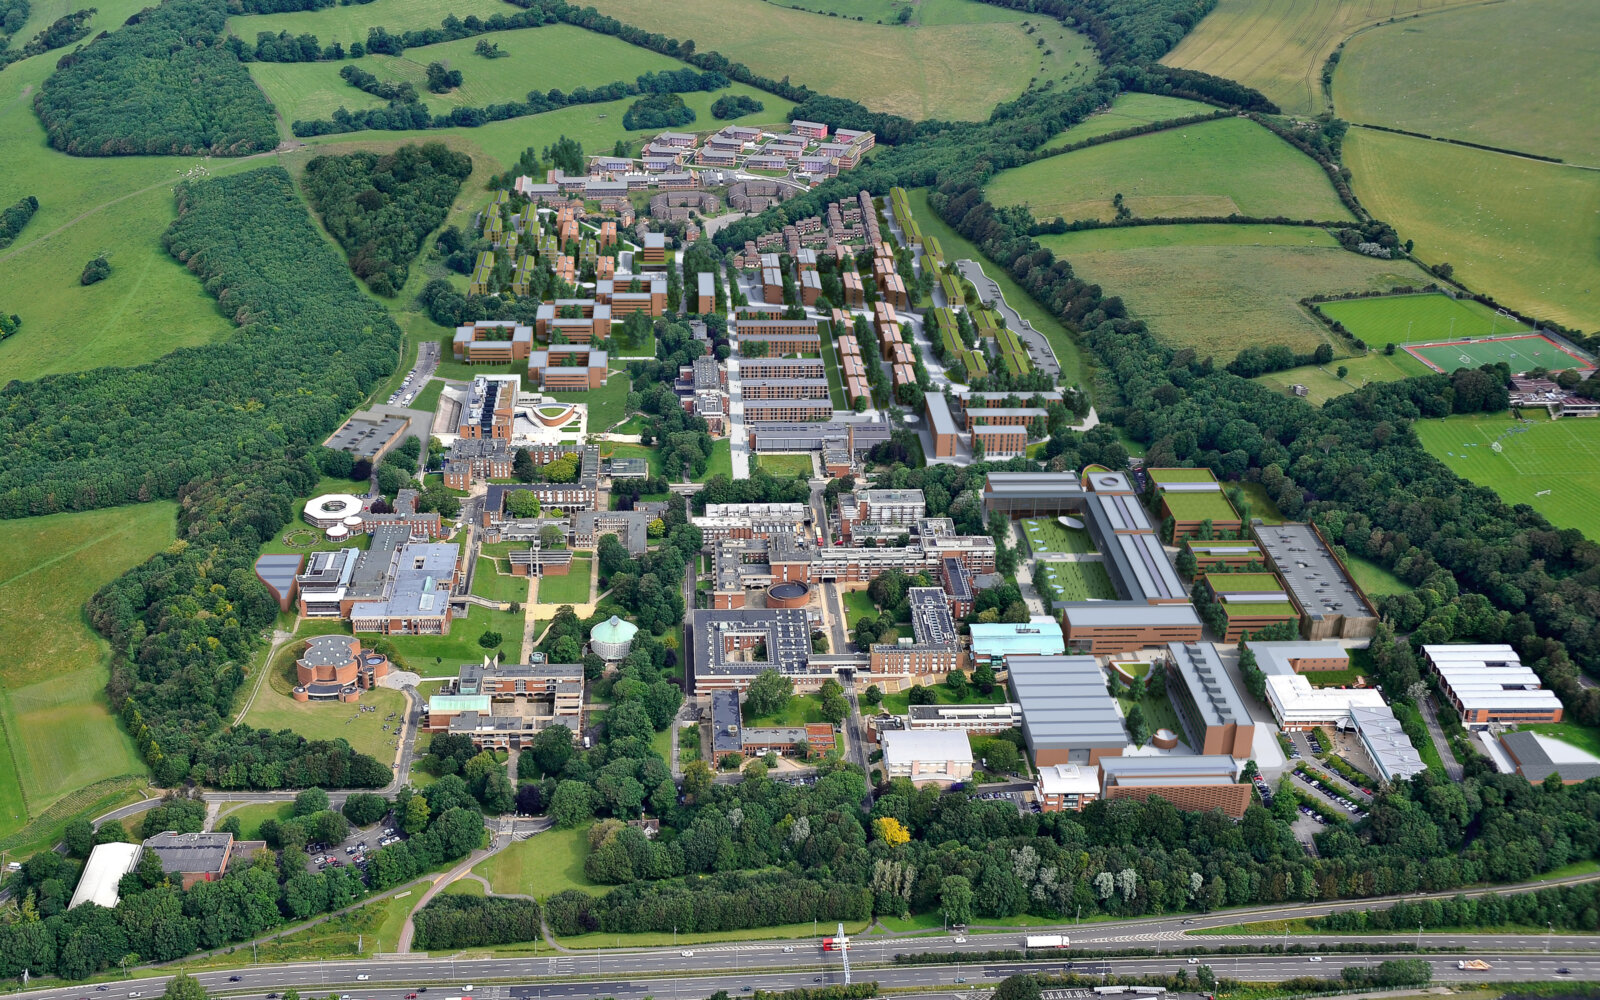 University of Sussex aerial view